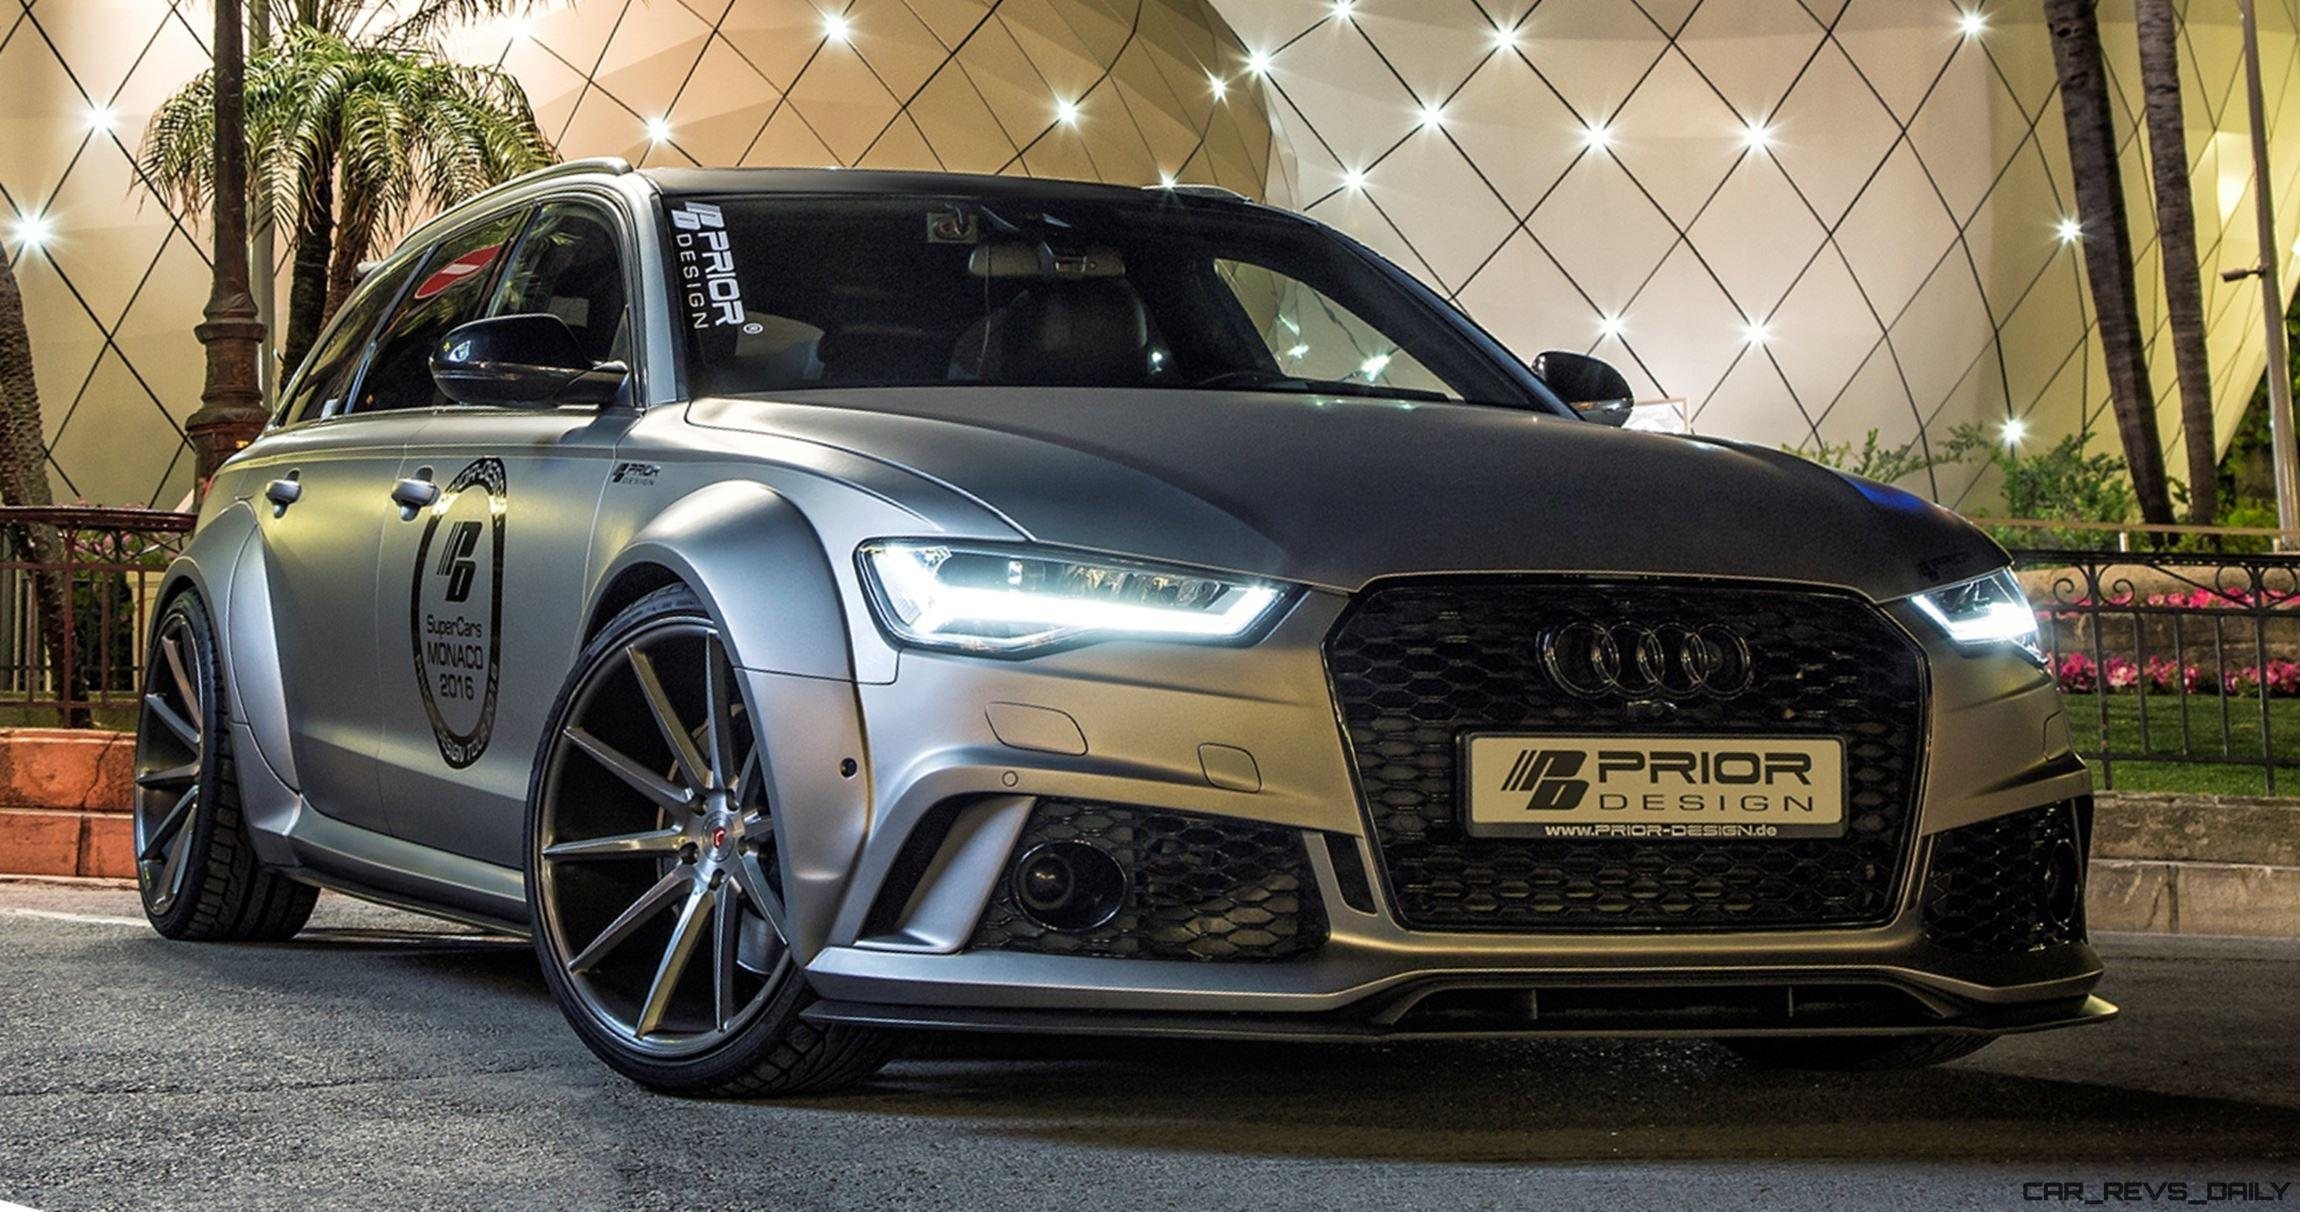 audi a6 s6 rs6 widebody prior design pd600r is hot new. Black Bedroom Furniture Sets. Home Design Ideas